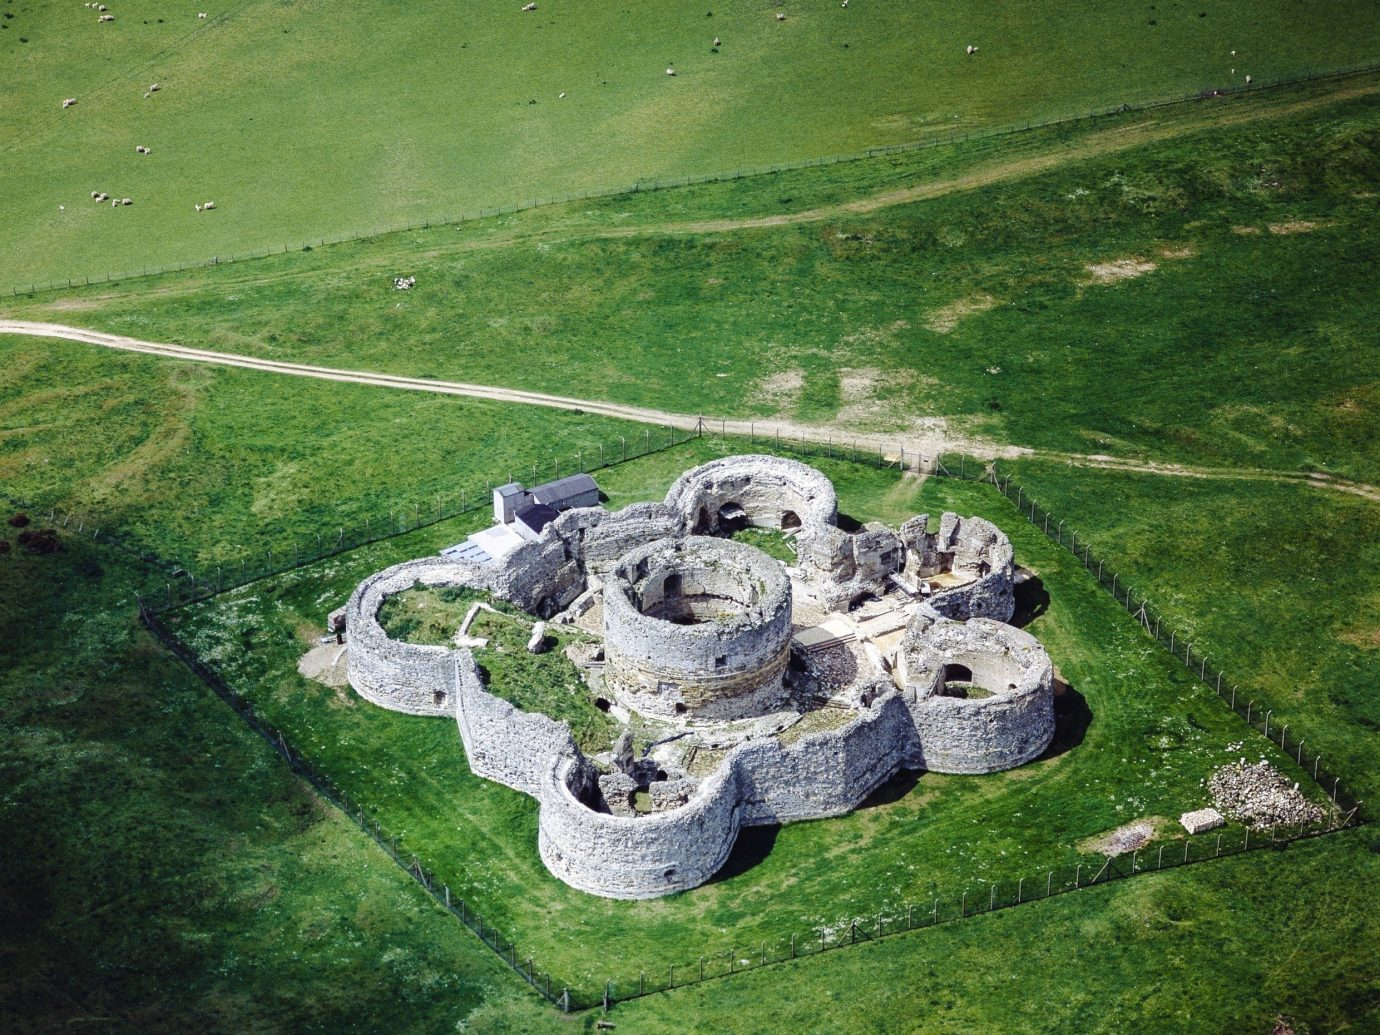 Romance Trip Ideas Weekend Getaways grass outdoor rock field aerial photography landscape archaeological site lawn grassy plant stone lush